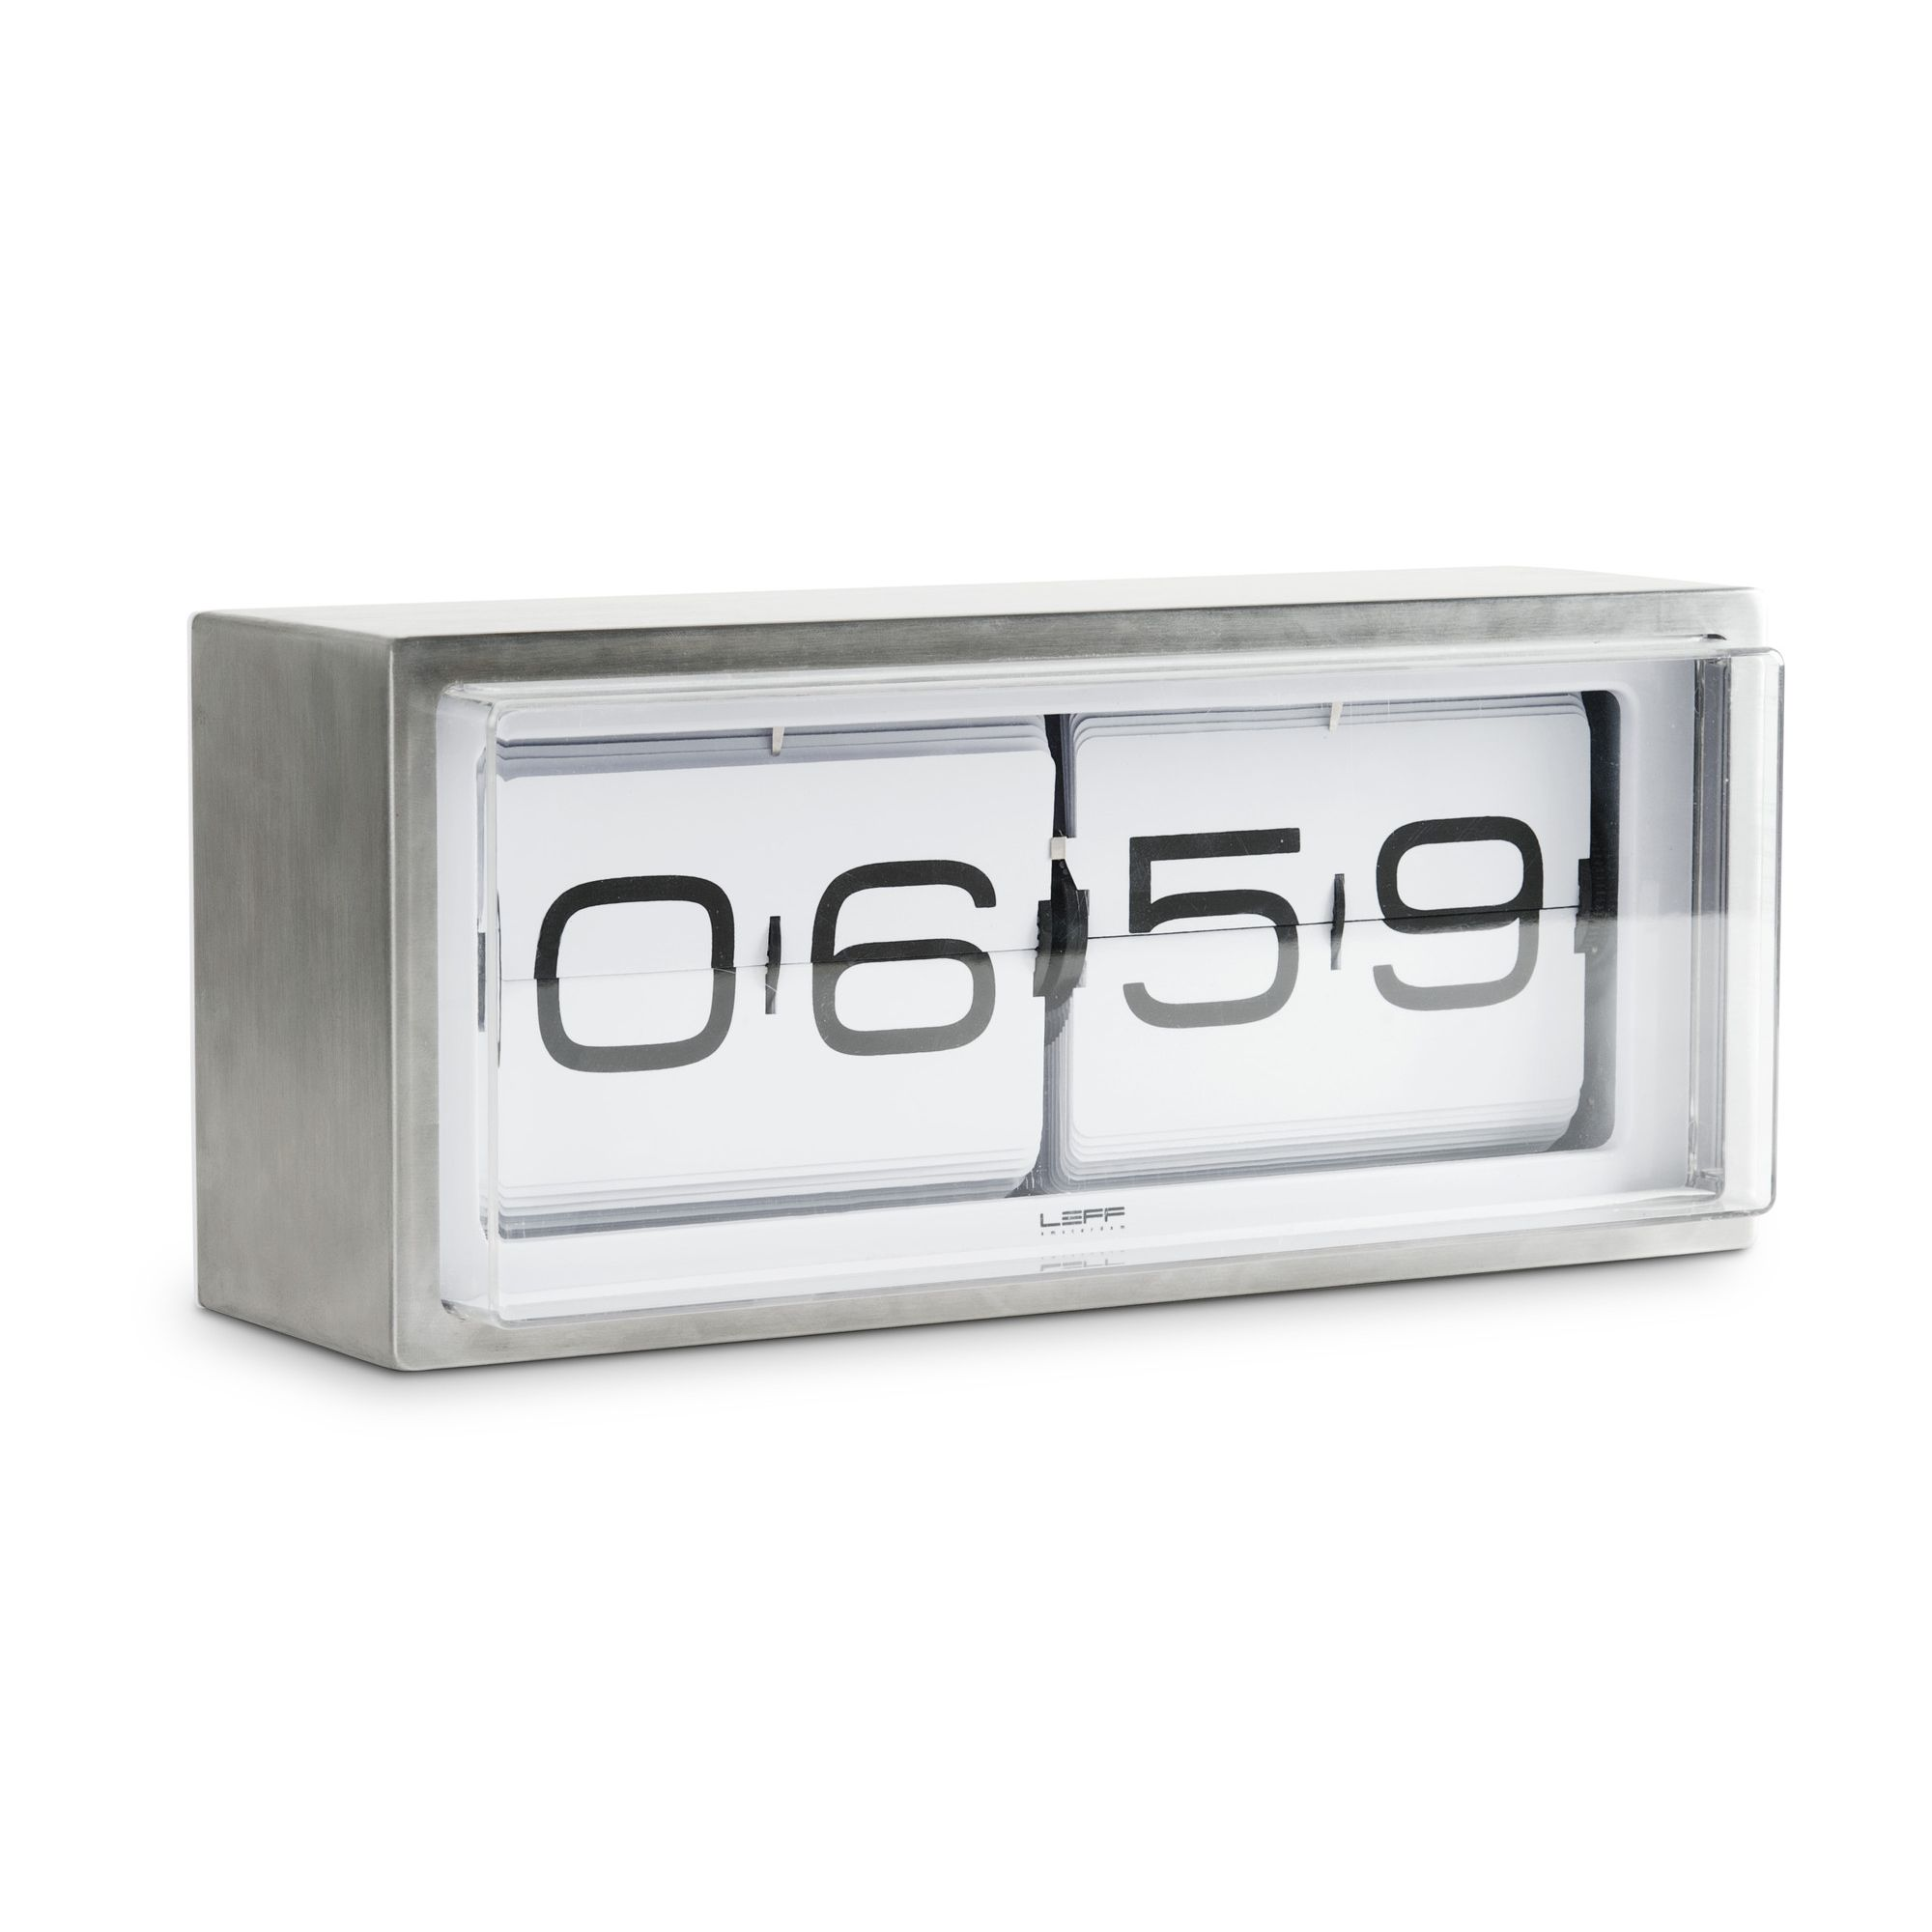 Leff Brick Wall/Desk Clock with Black Dial in Stainless Steel - AM/PM at Tesco Direct